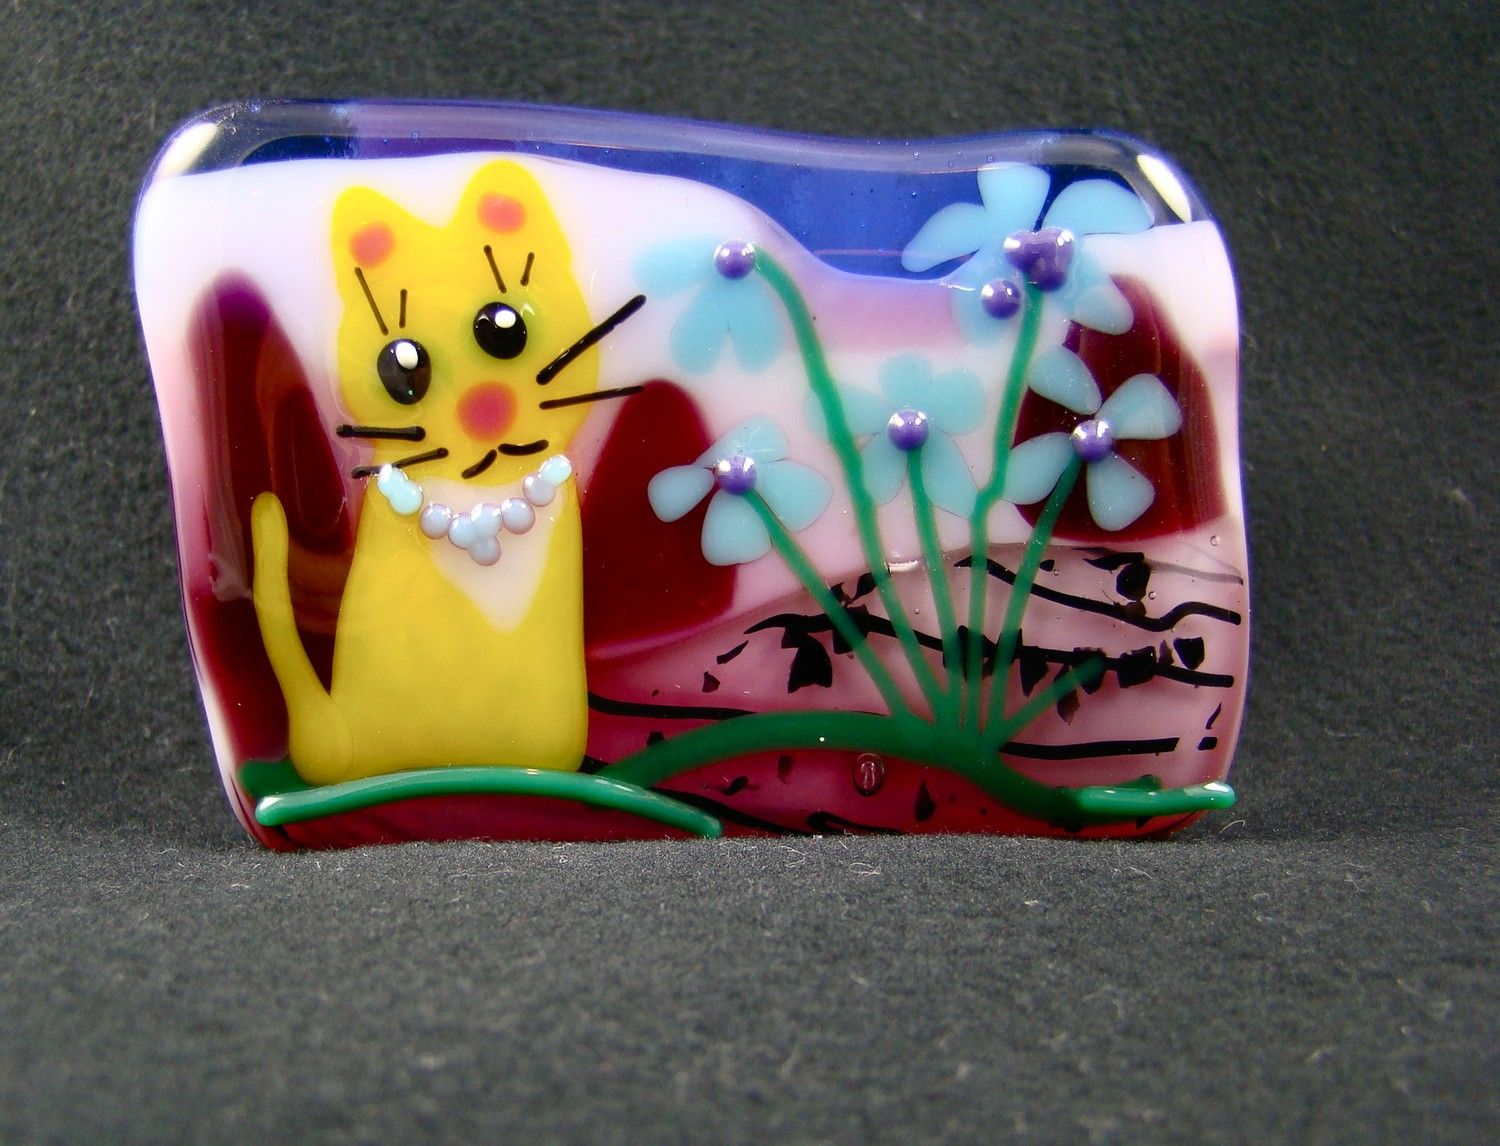 Fused glass kitty cat business card holder business card holders fused glass kitty cat business card holder colourmoves Choice Image